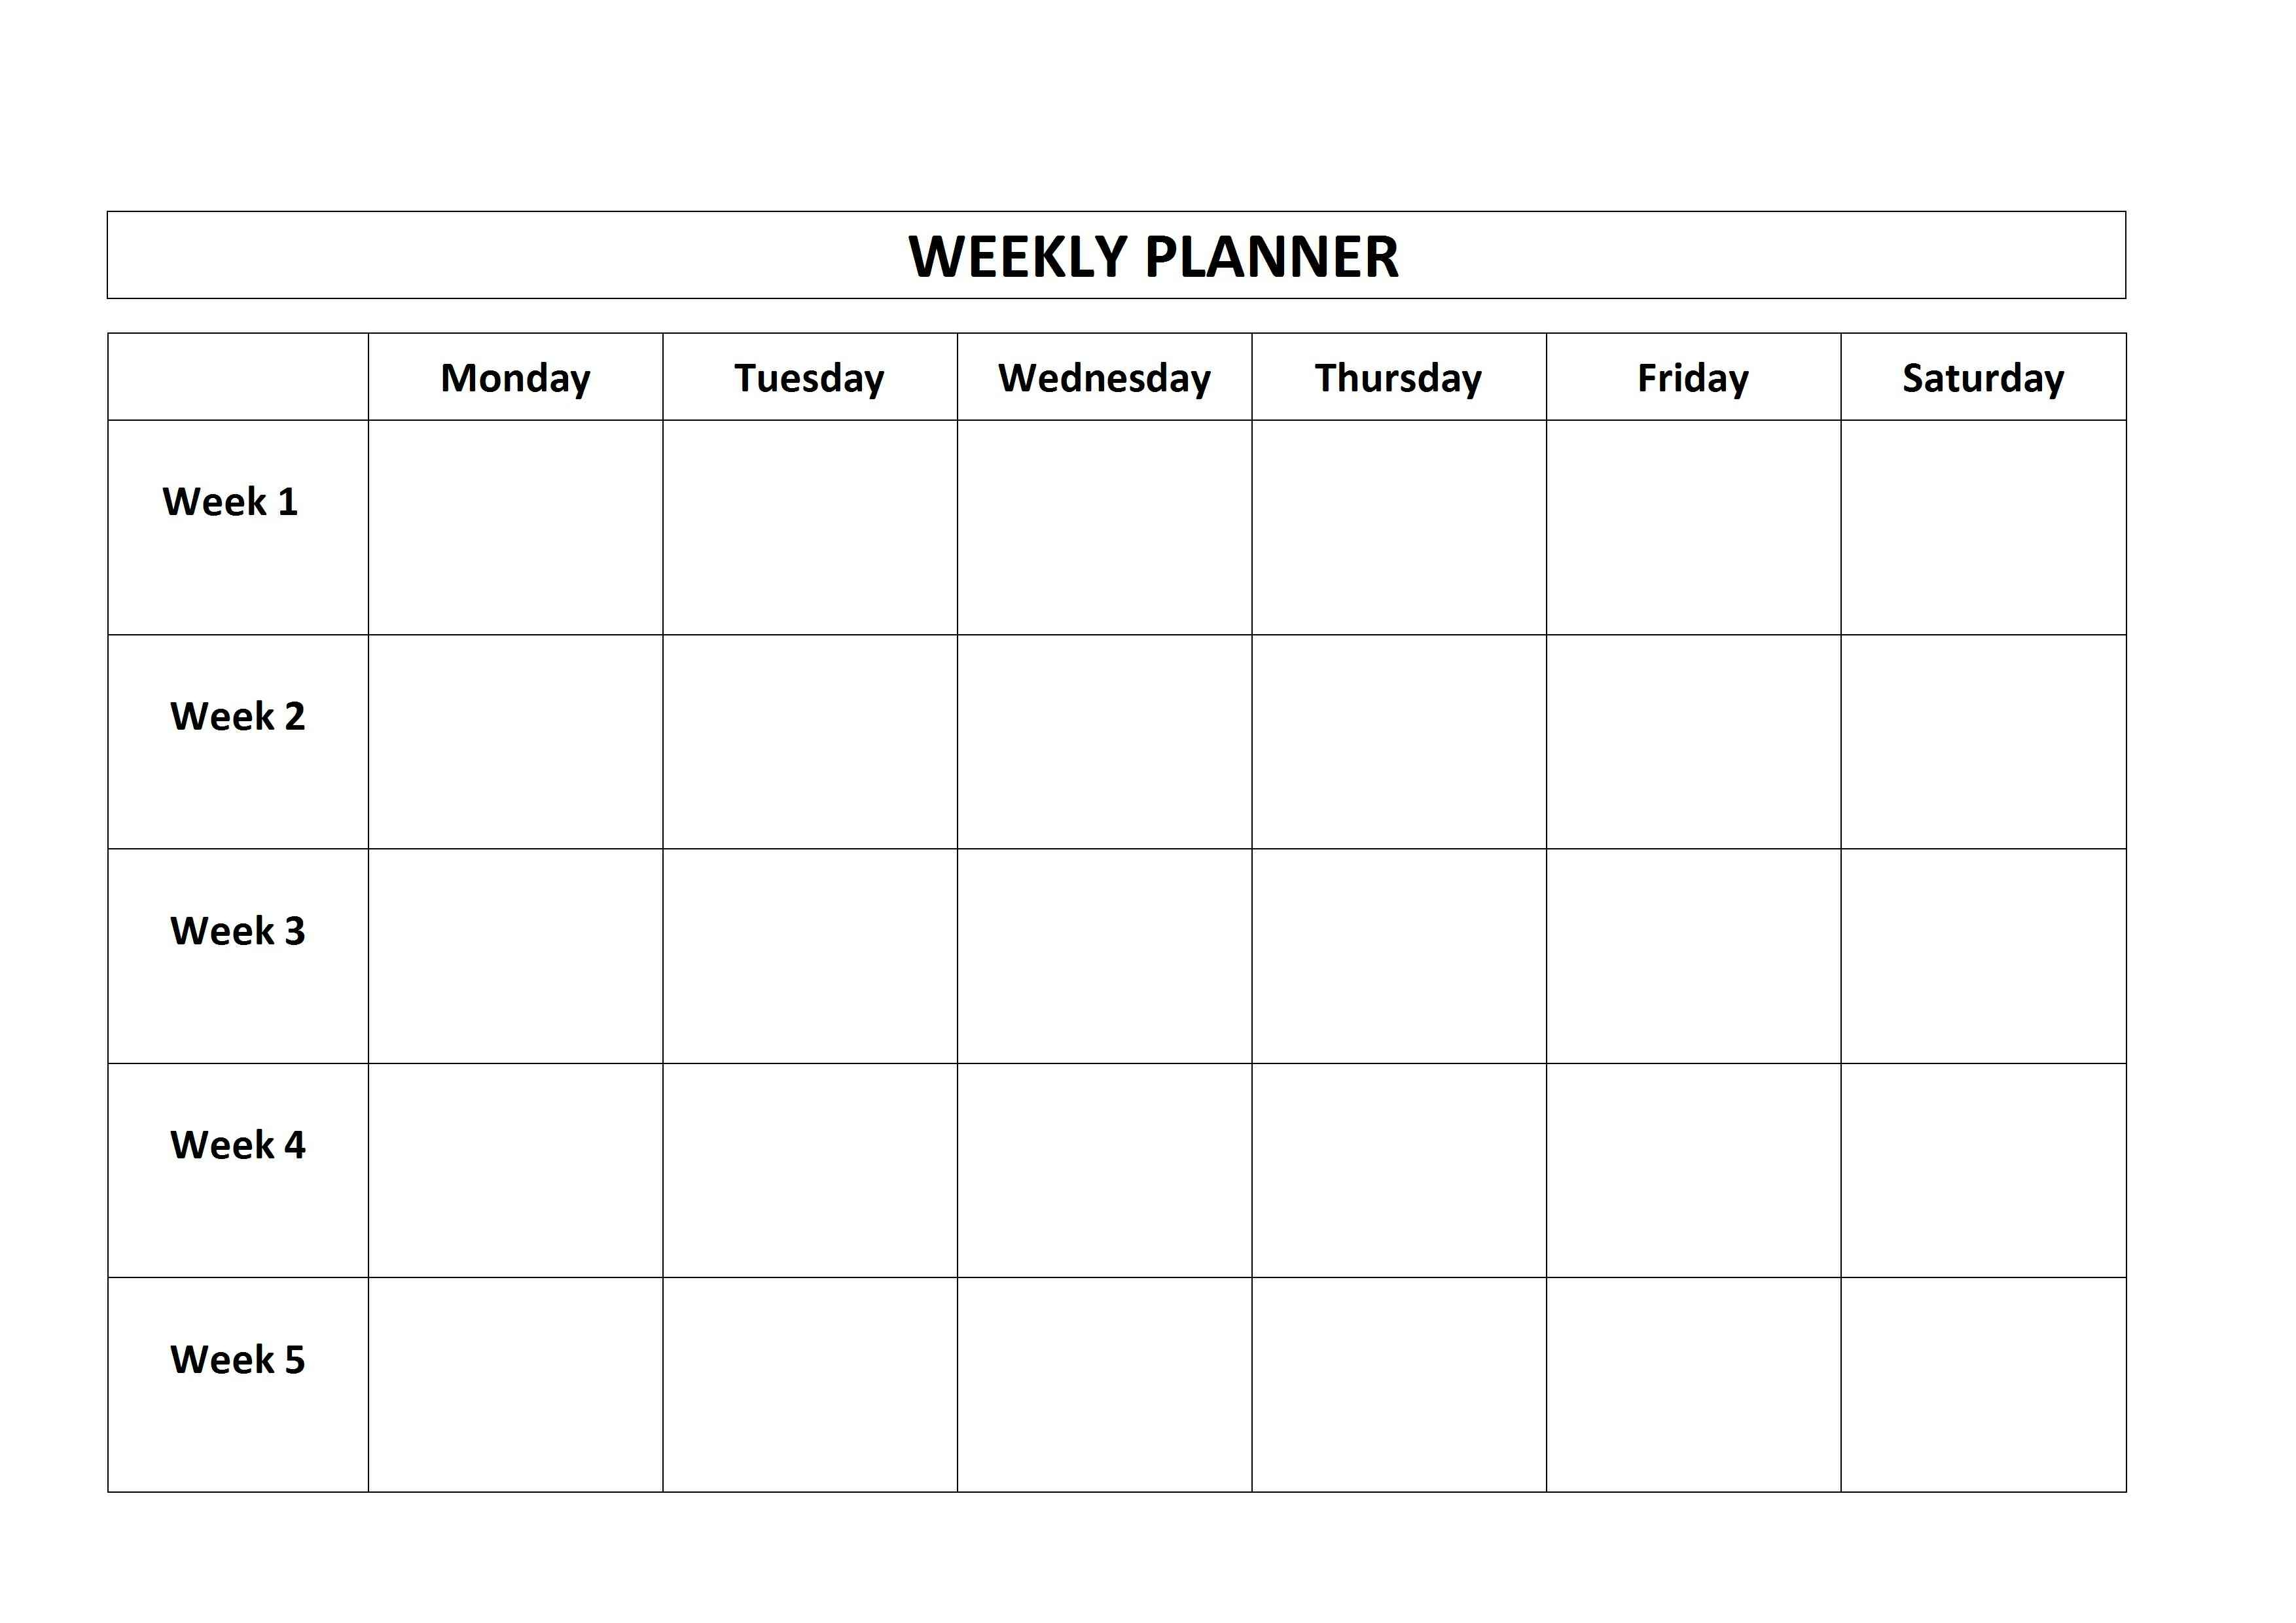 Week Schedule Template Day Planner Lesson Plan Training | Smorad intended for Weekly Calander Lesson Plan Template